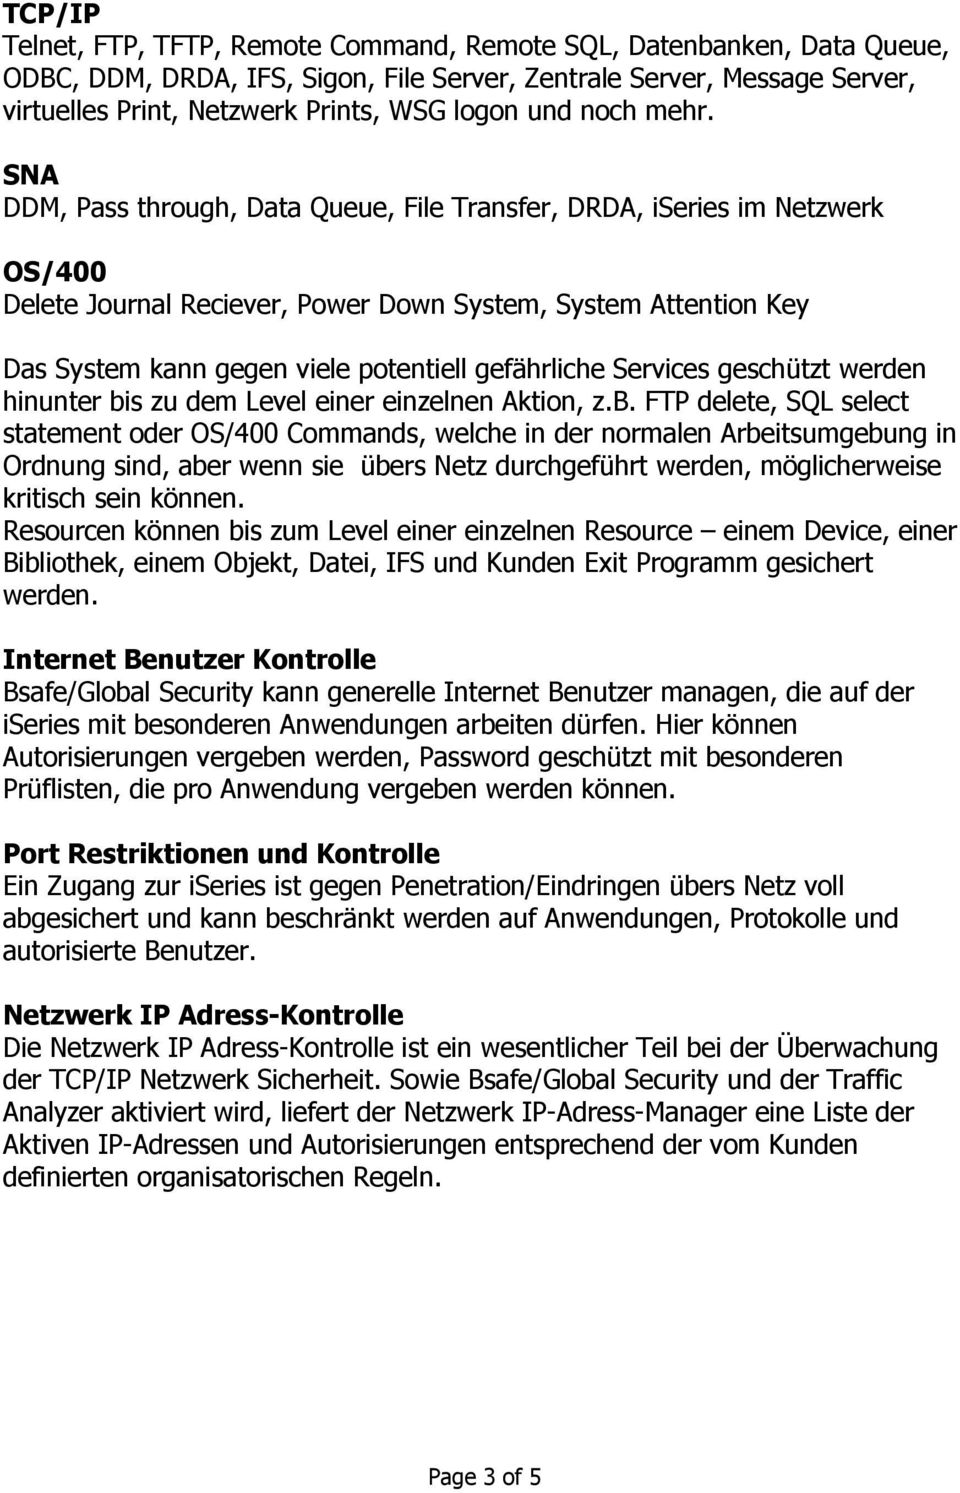 SNA DDM, Pass through, Data Queue, File Transfer, DRDA, iseries im Netzwerk OS/400 Delete Journal Reciever, Power Down System, System Attention Key Das System kann gegen viele potentiell gefährliche